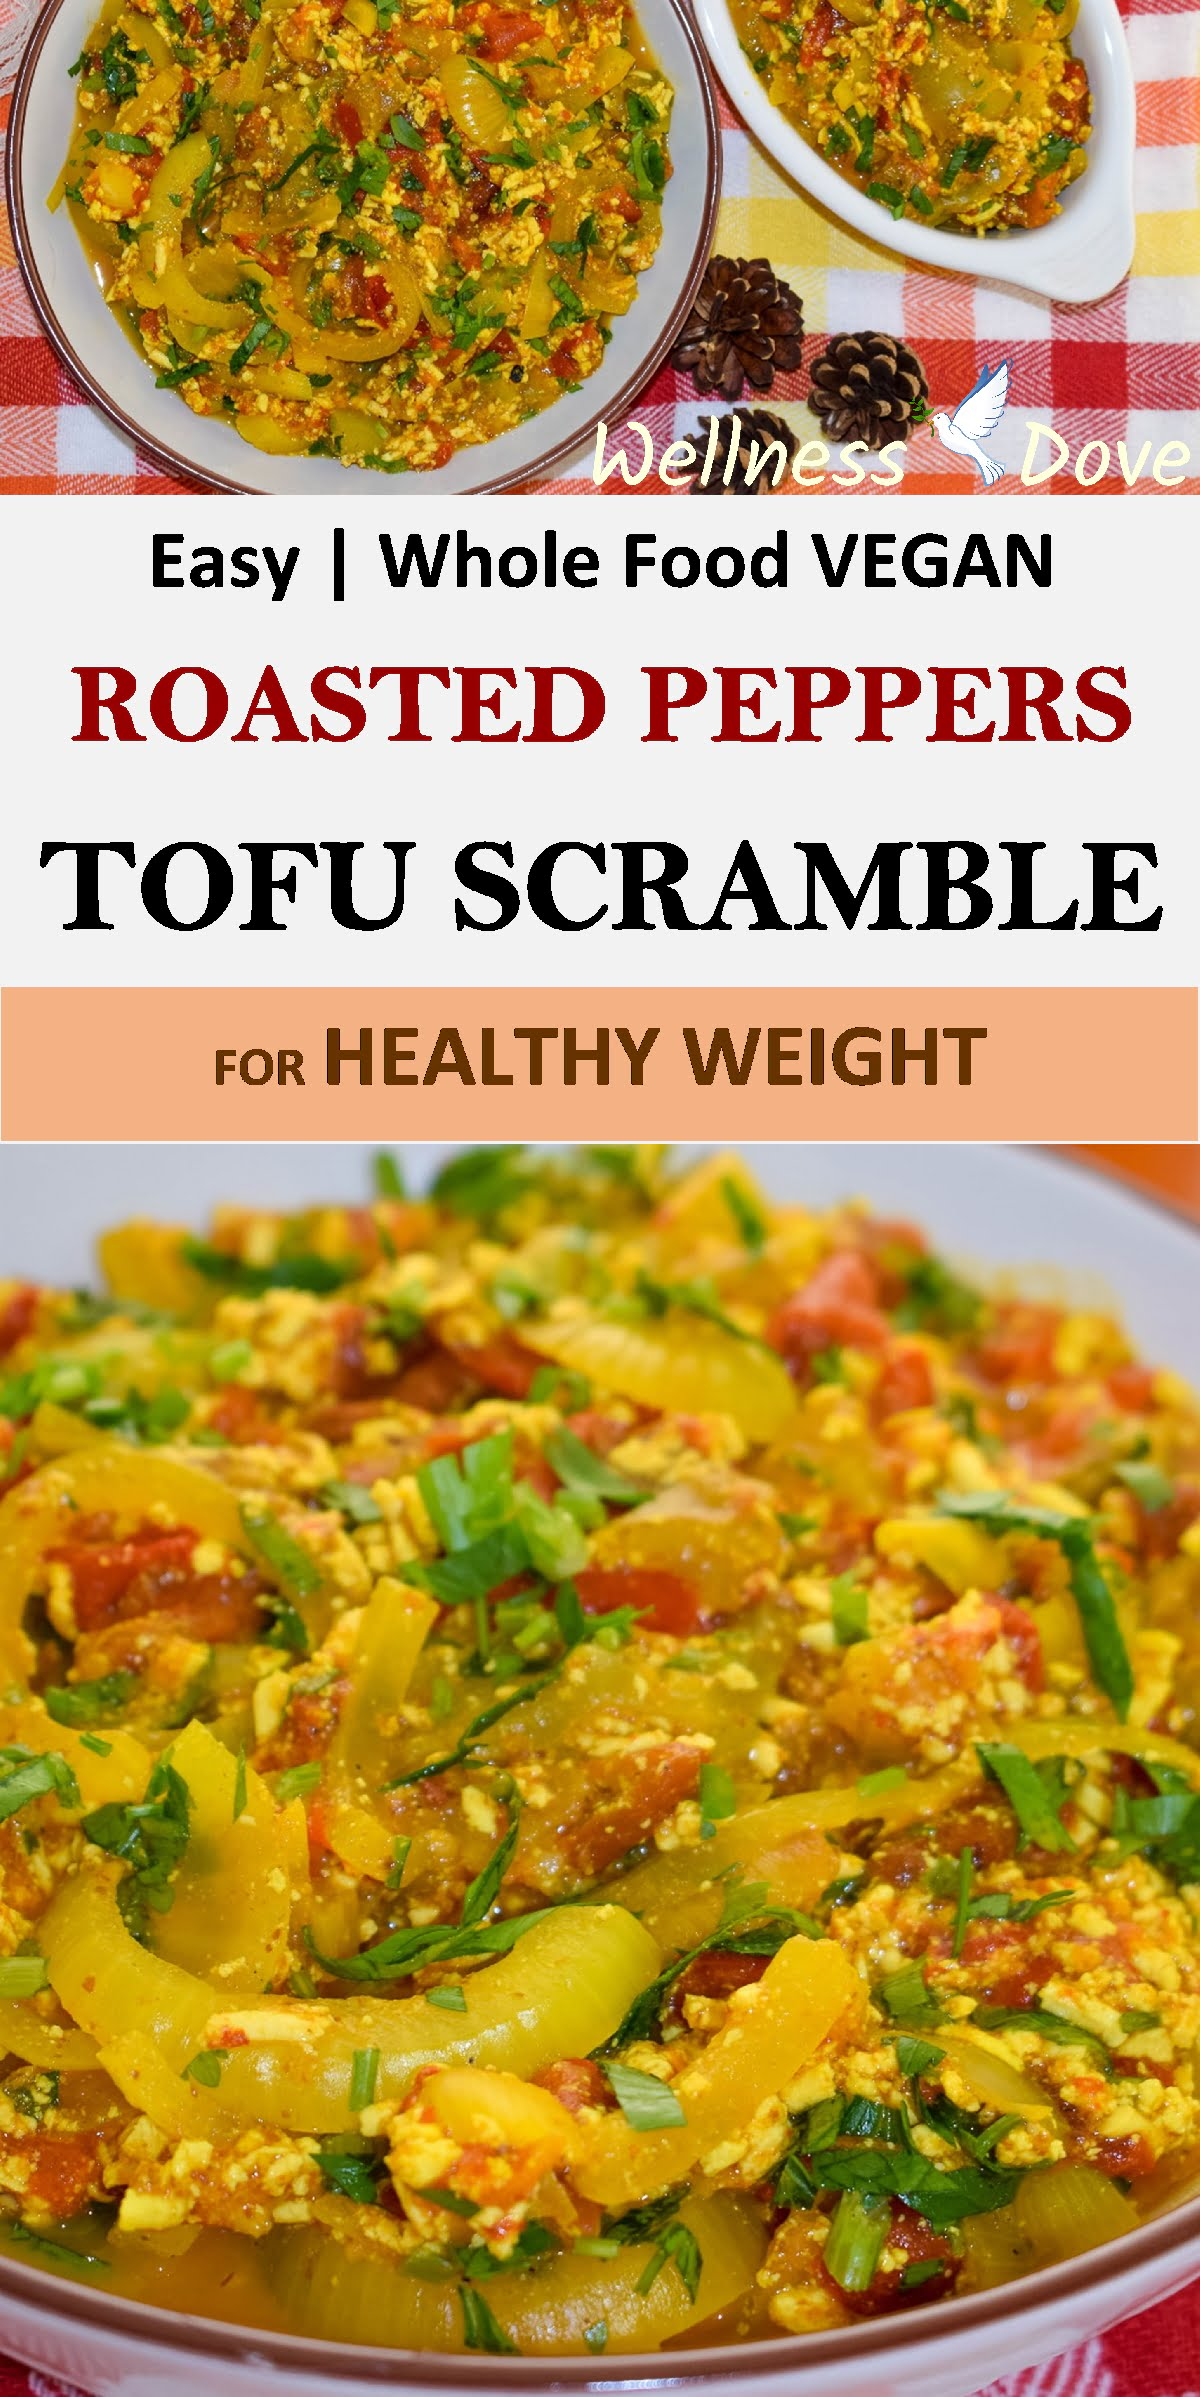 Quick and easy Tofu Scramble recipe!With only whole plant food ingredients.IThis is a fresh and tasty meal, super juicy thanks to the fresh tomatoes and roasted peppers.The tofu gives a hearty and satiating feel while the turmeric adds a distinct and appetizing flavor.